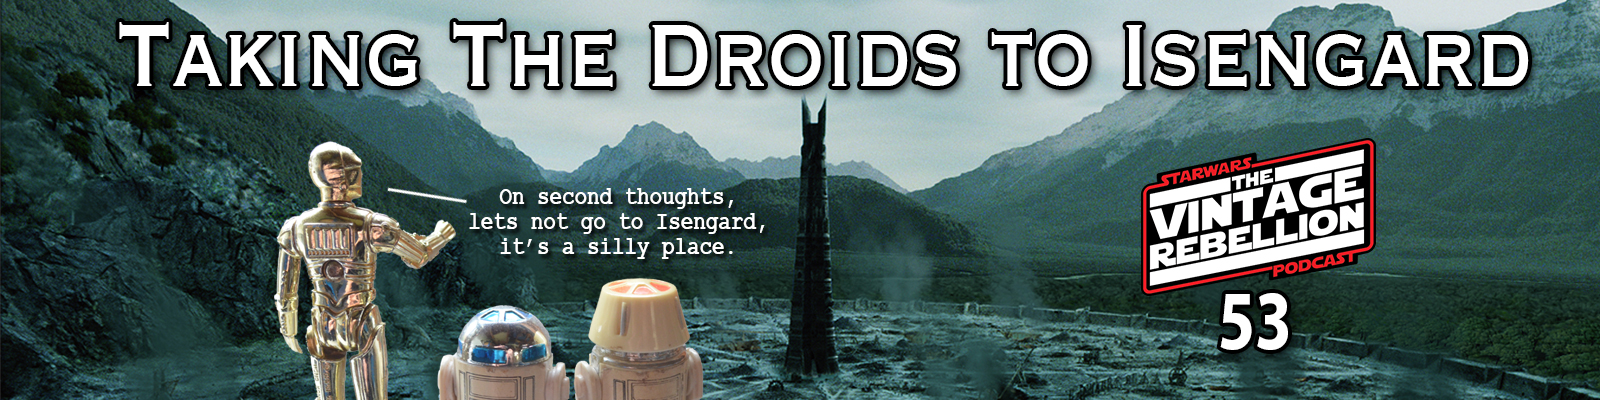 Episode 53 : Taking The Droids To Isengard